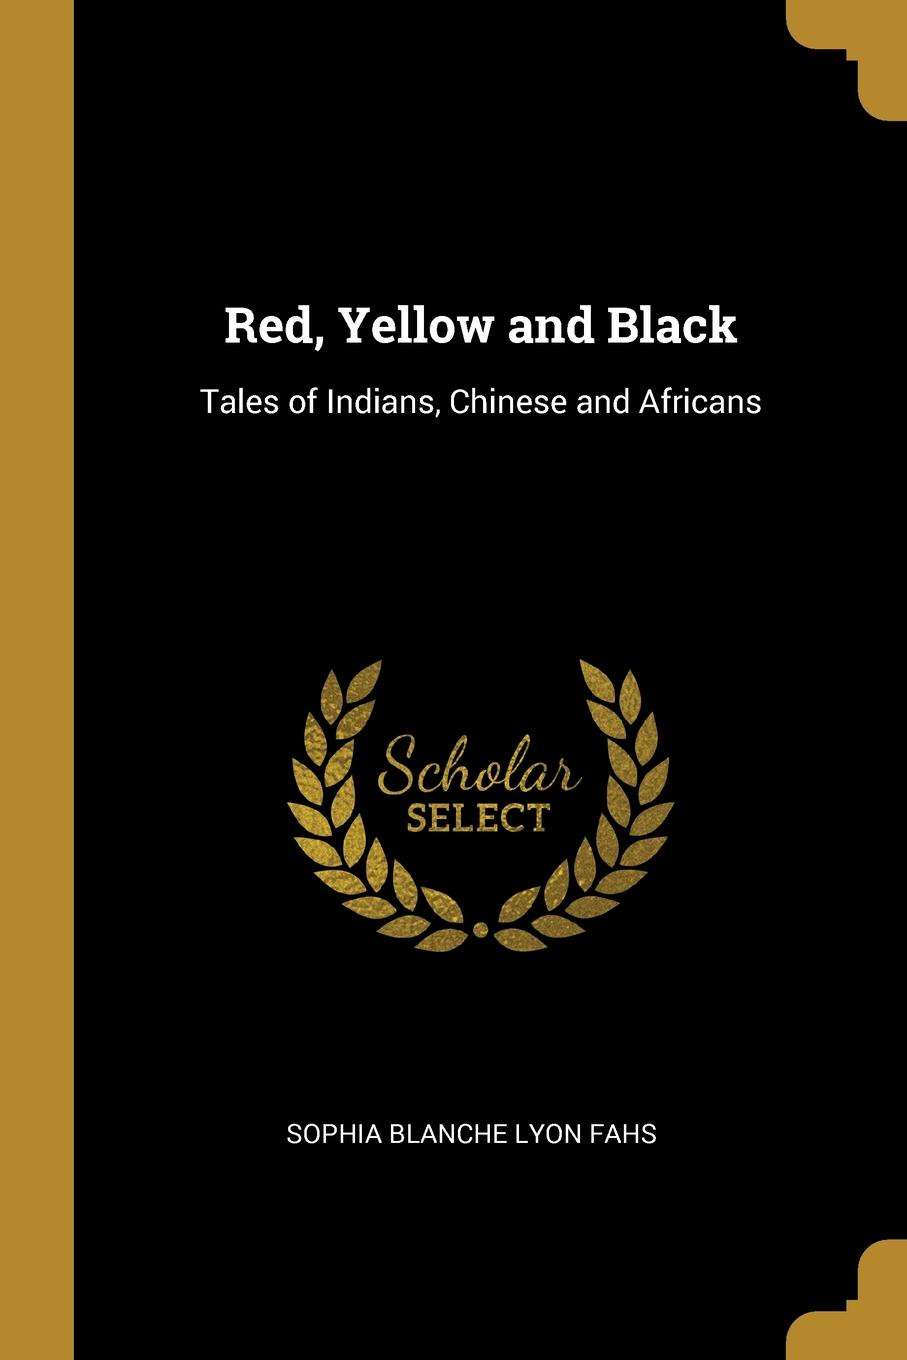 Sophia Blanche Lyon Fahs Red, Yellow and Black. Tales of Indians, Chinese and Africans